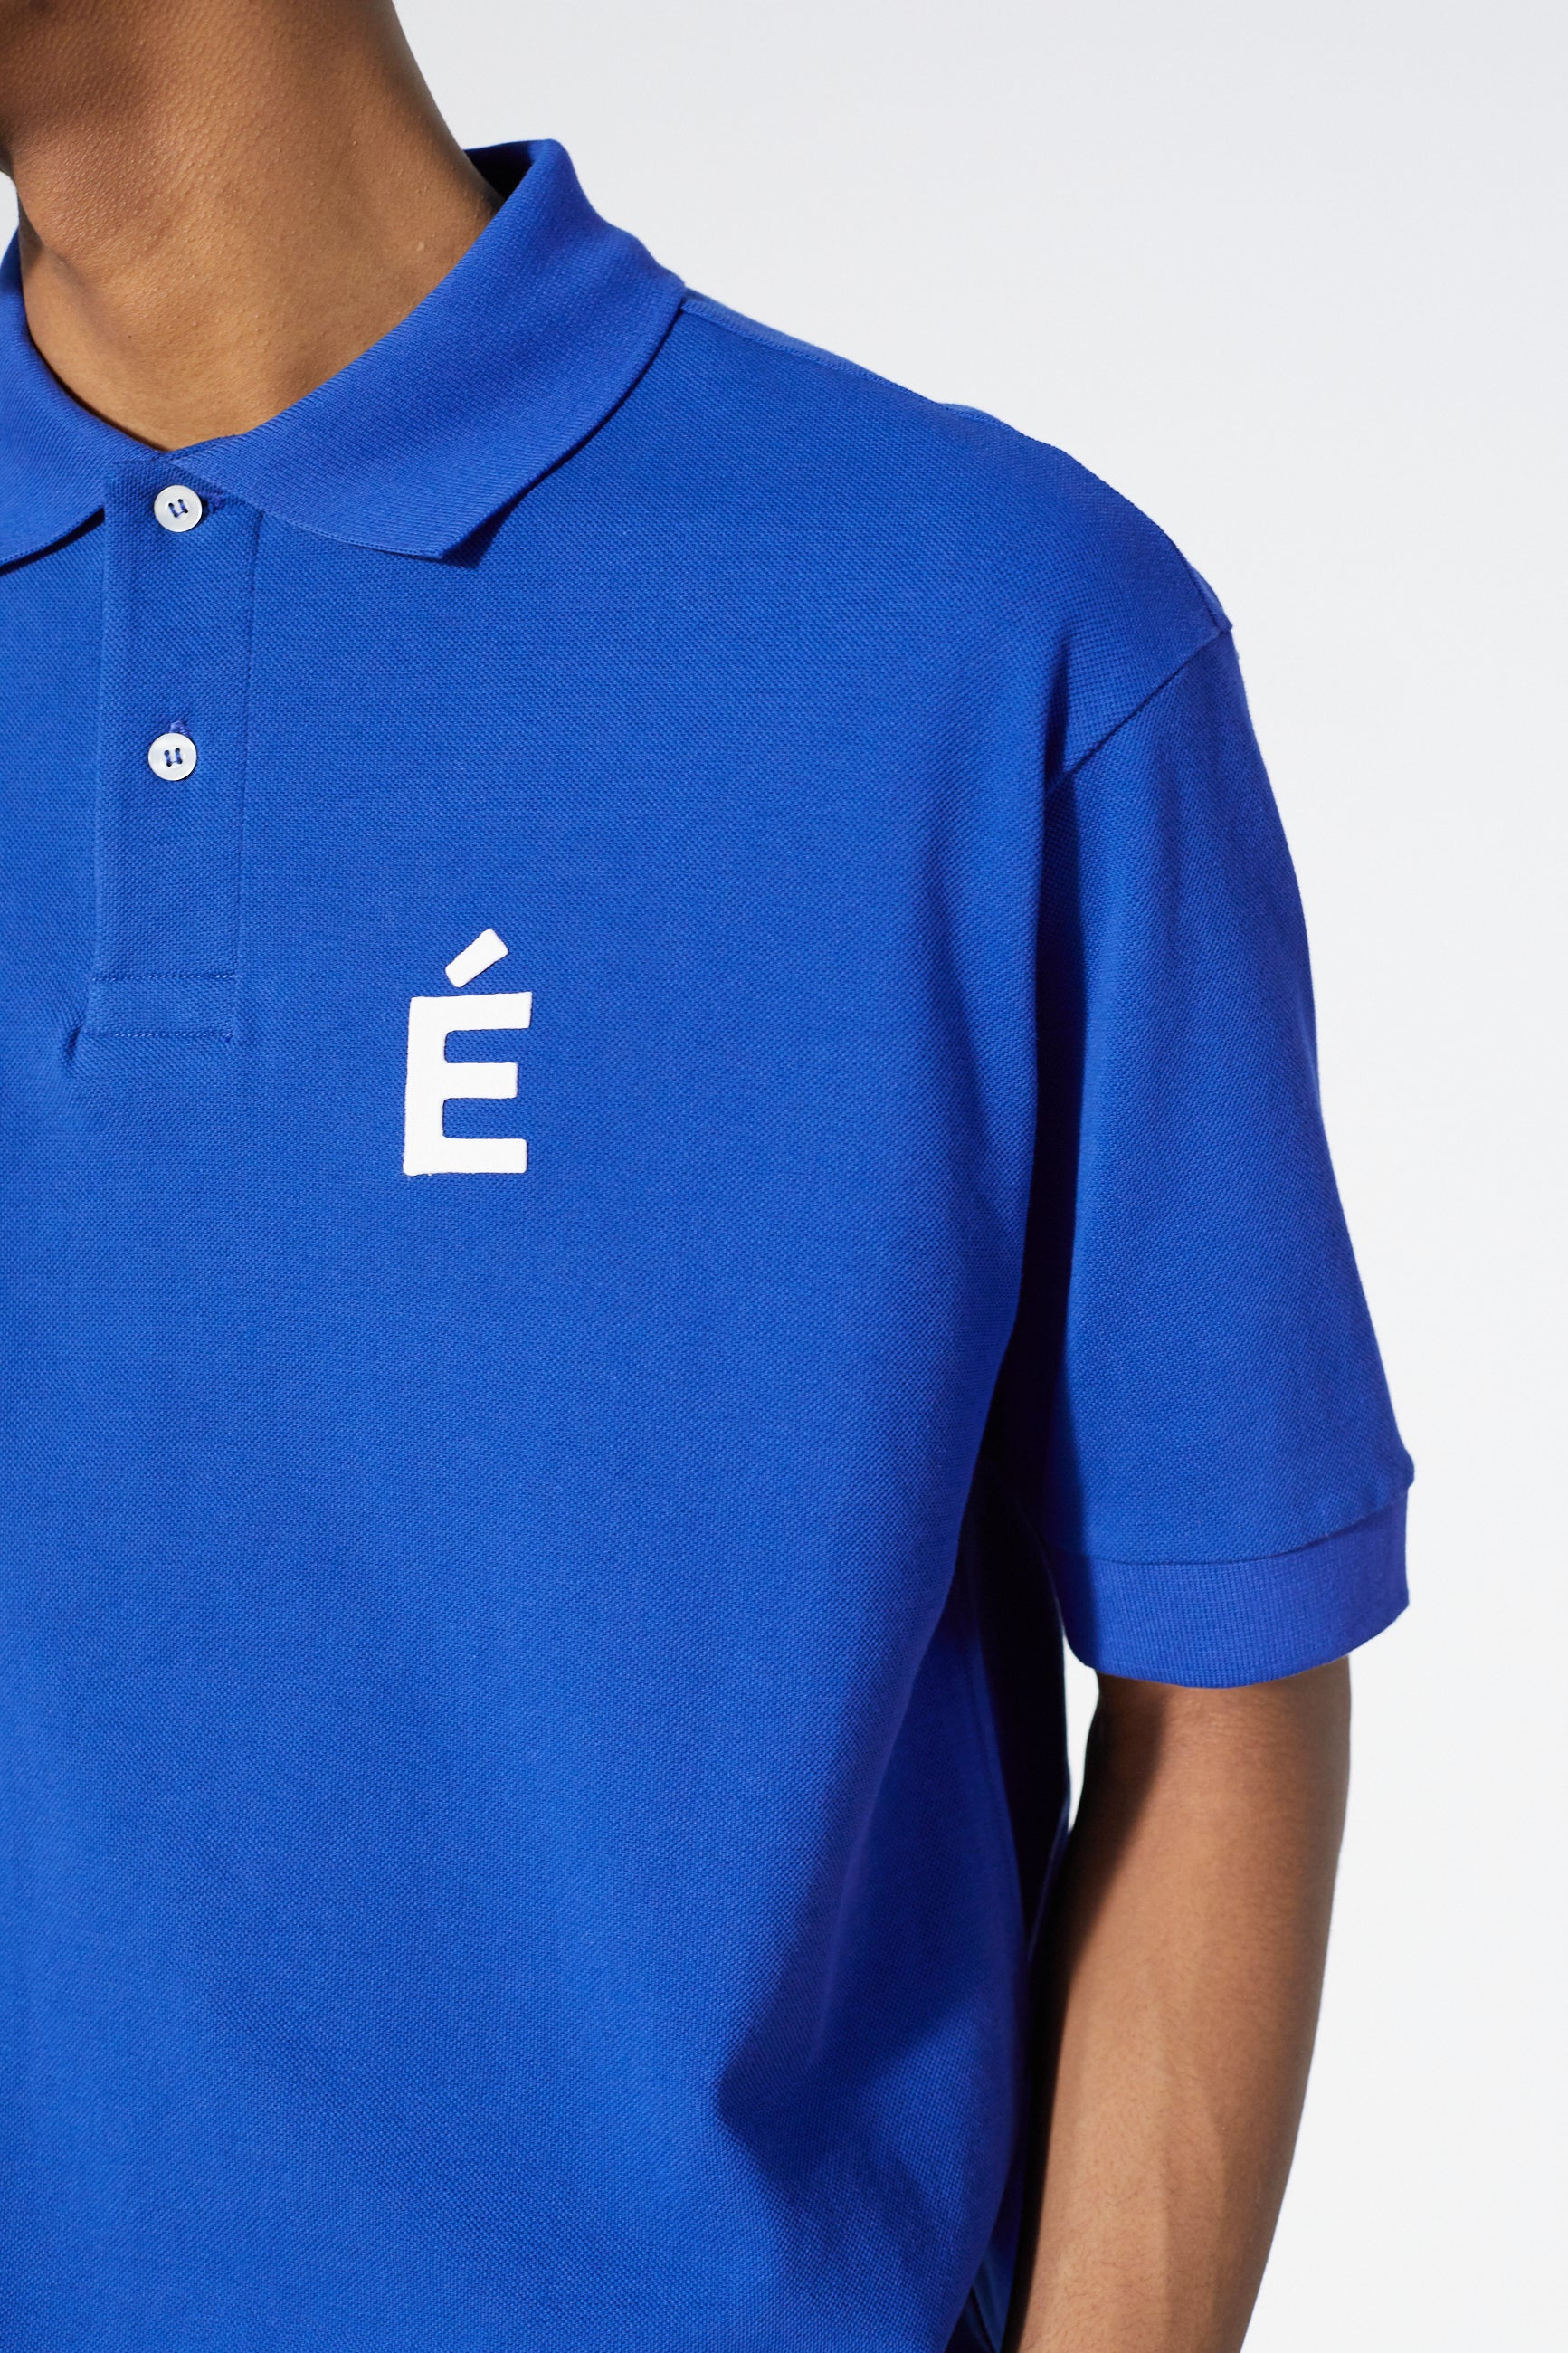 Études Polo Patch Blue T-shirt 4